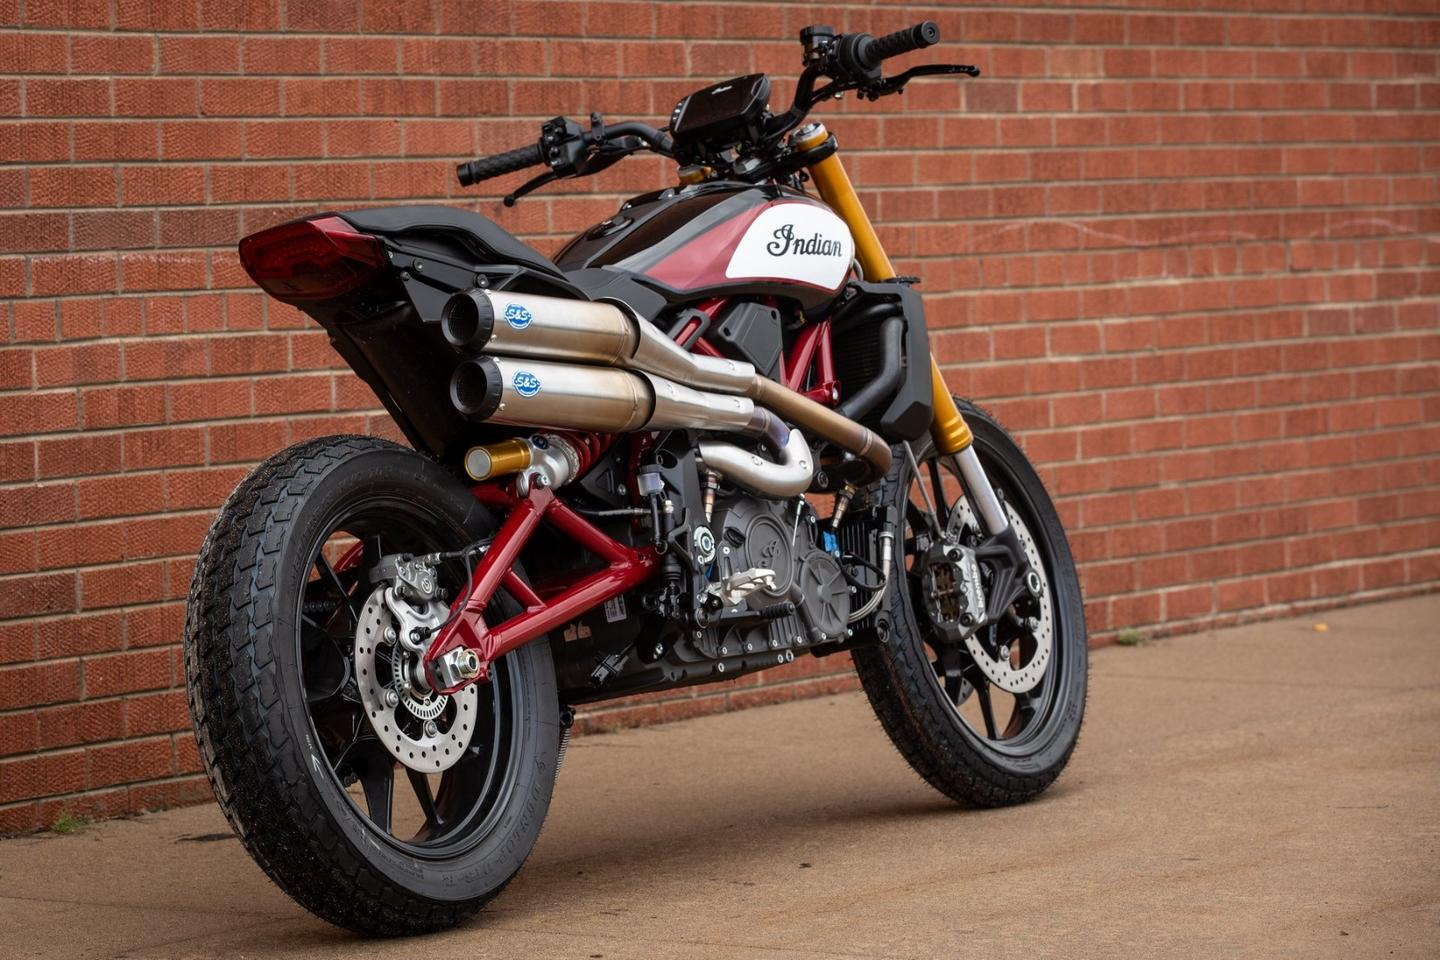 S&S made the exhausts for the concept Custom, now there's a prototype for the streetbike - and they look great.